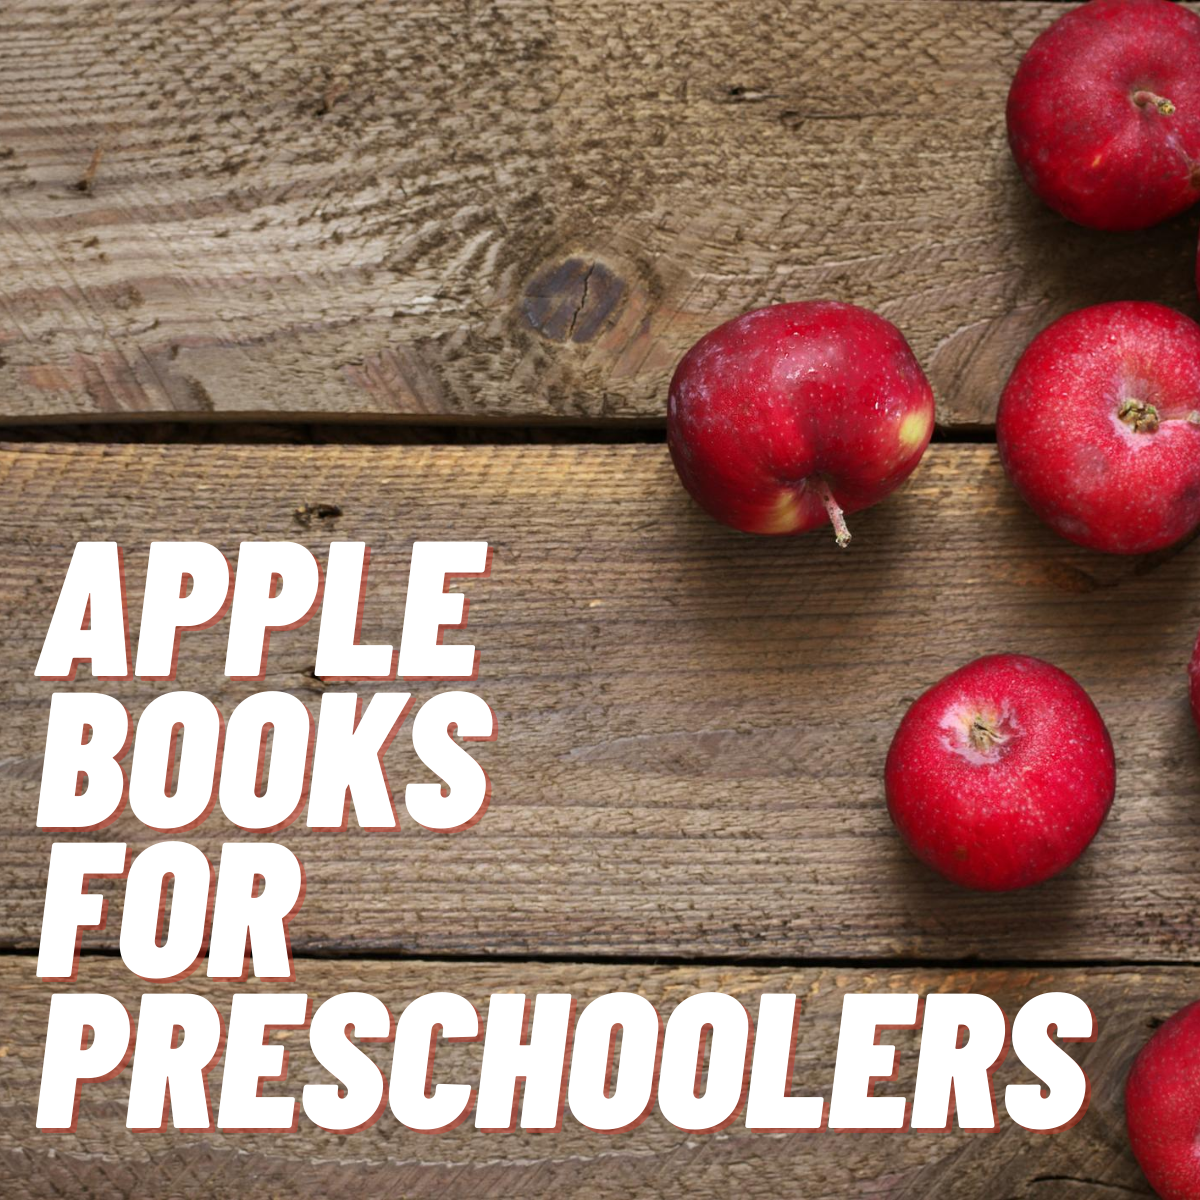 Apple Books for Preschoolers